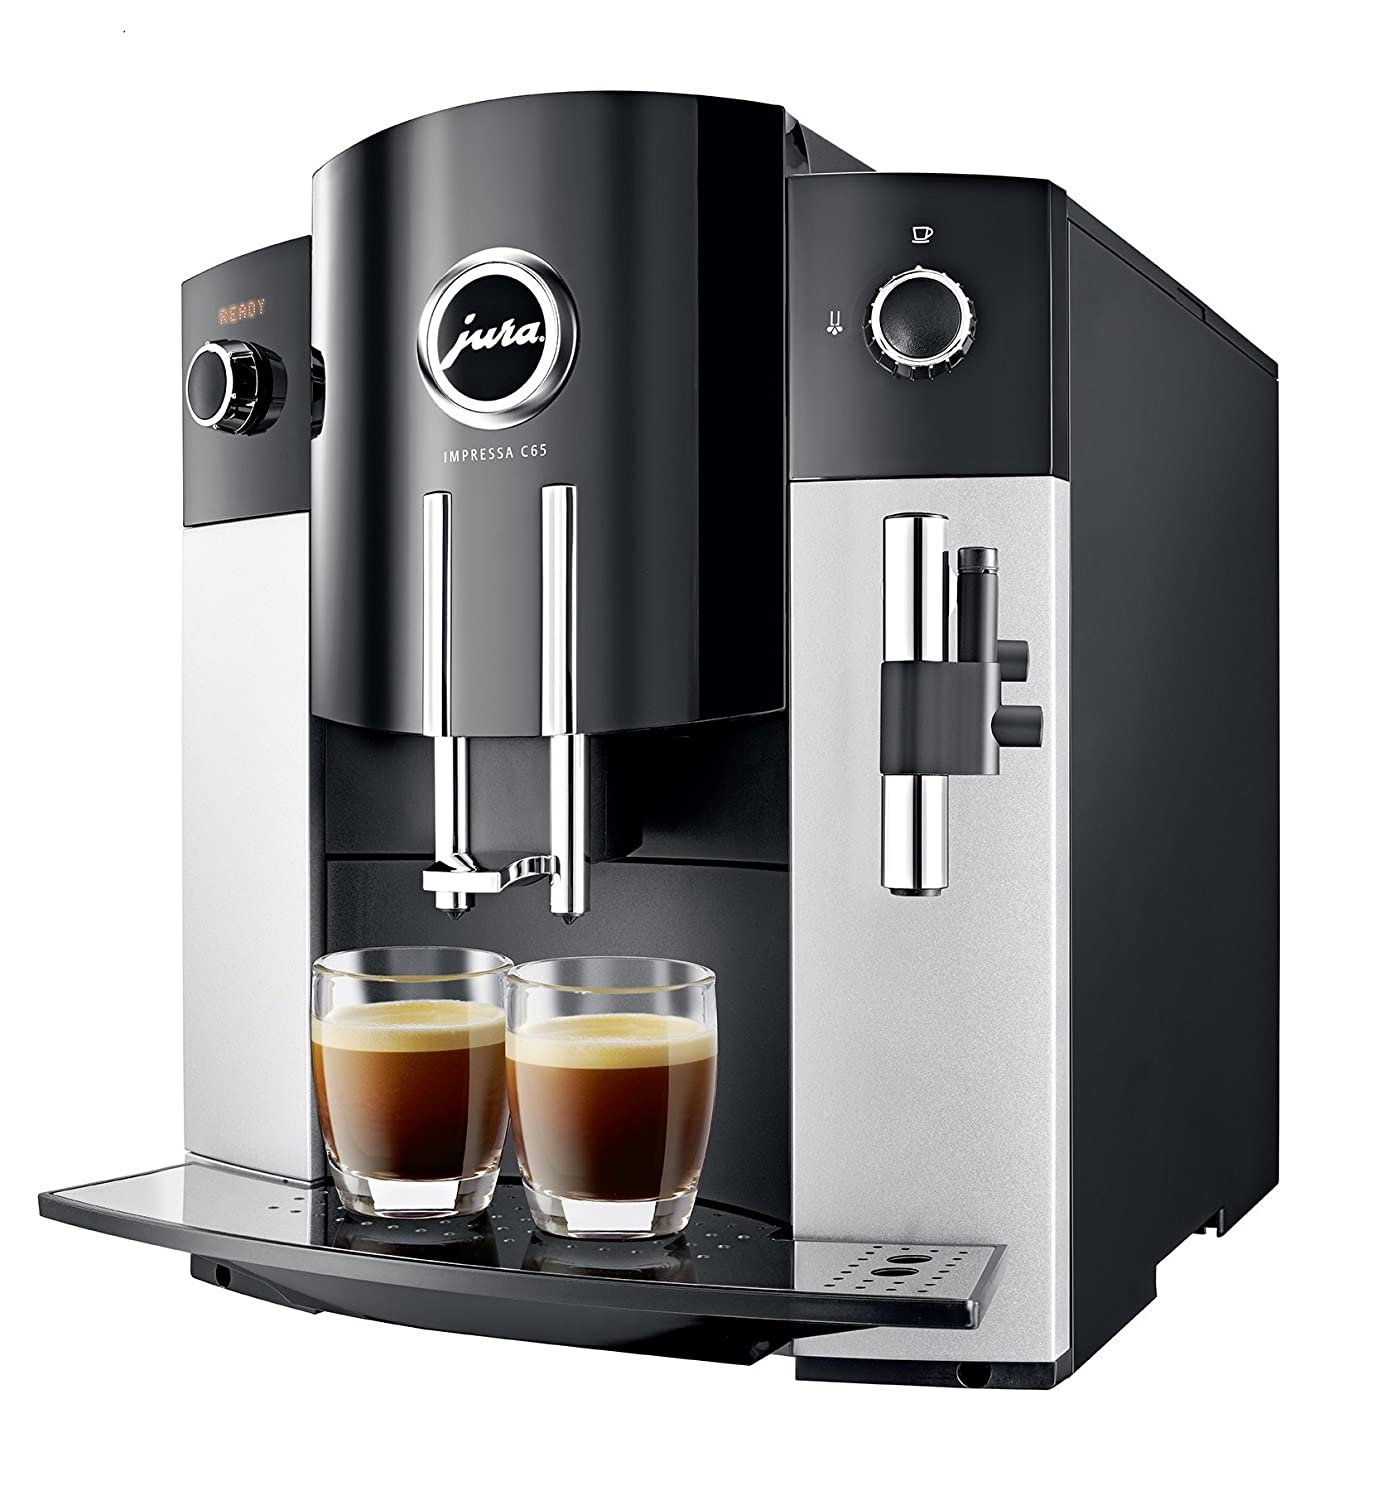 The Best Super Automatic Espresso Machines Under $1500